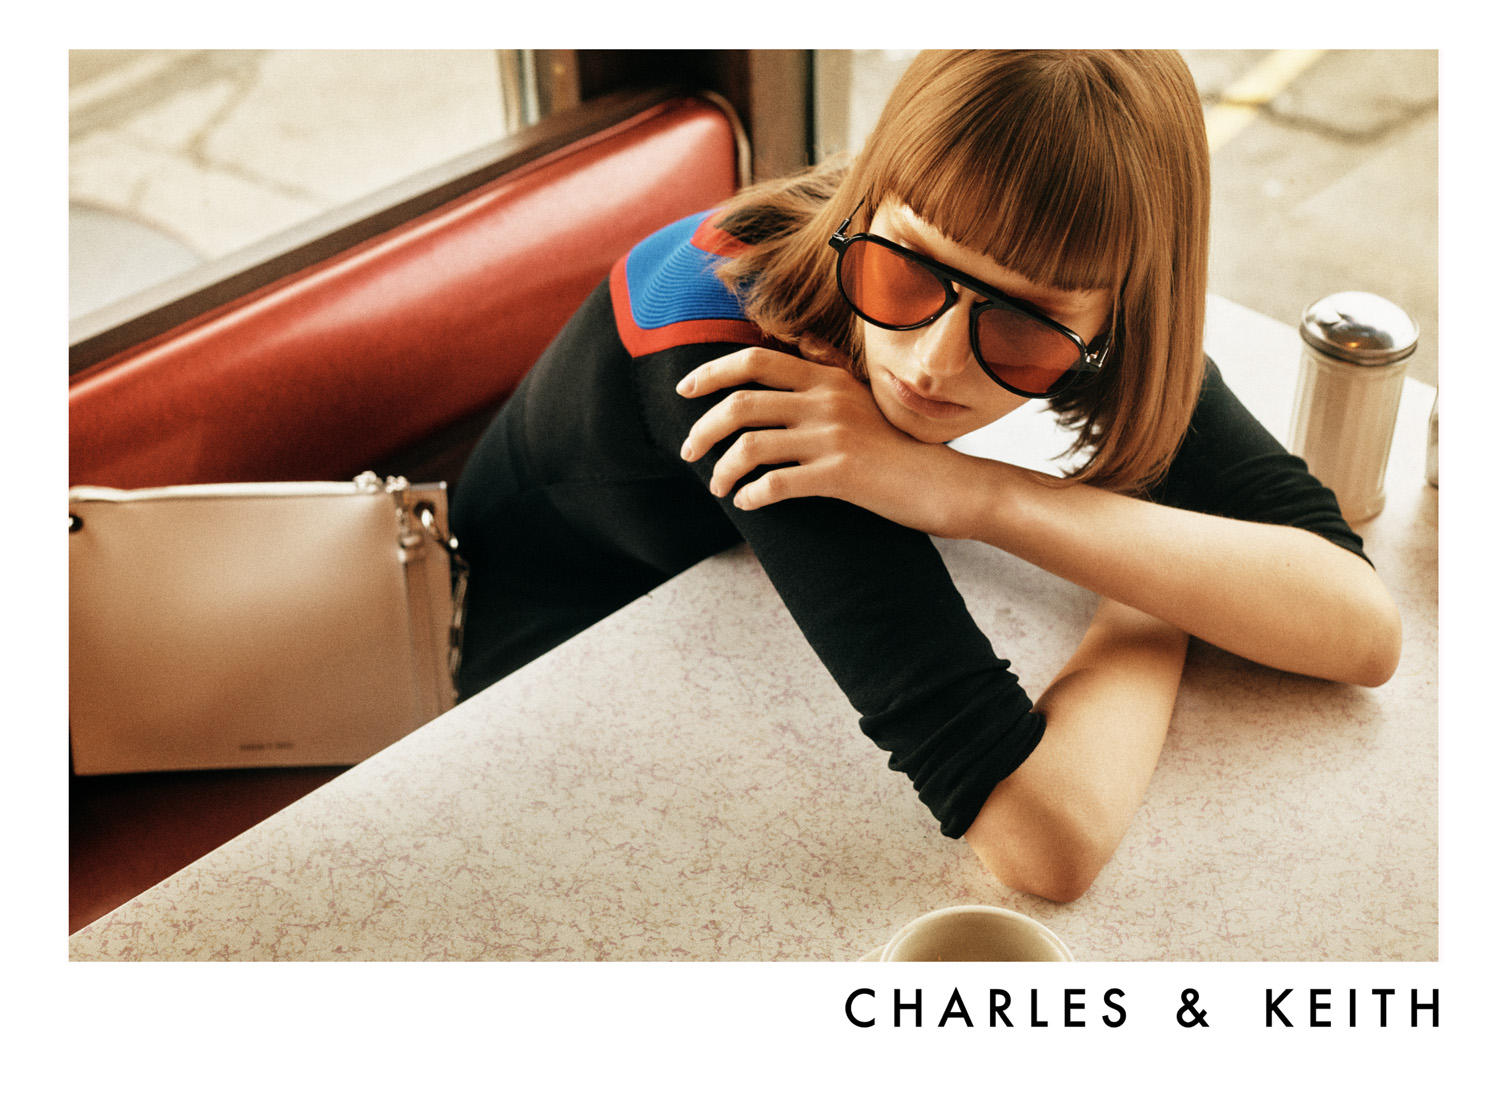 ALVIN KEAN WONG CHARLES AND KEITH FASHION ADVERTISING PHOTOGRAPHER